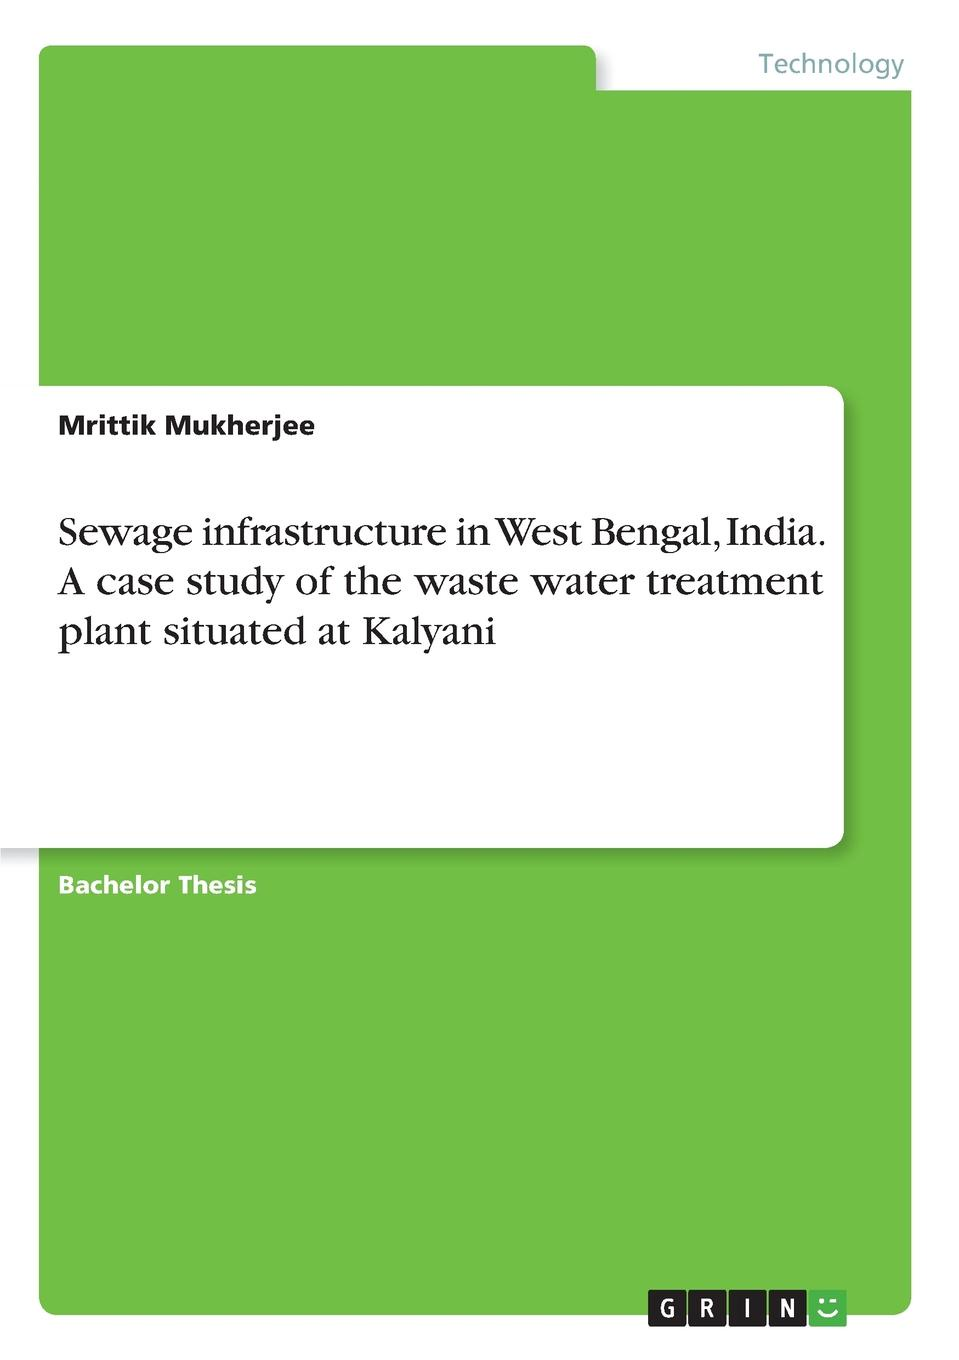 Mrittik Mukherjee Sewage infrastructure in West Bengal, India. A case study of the waste water treatment plant situated at Kalyani kevin henke arsenic environmental chemistry health threats and waste treatment